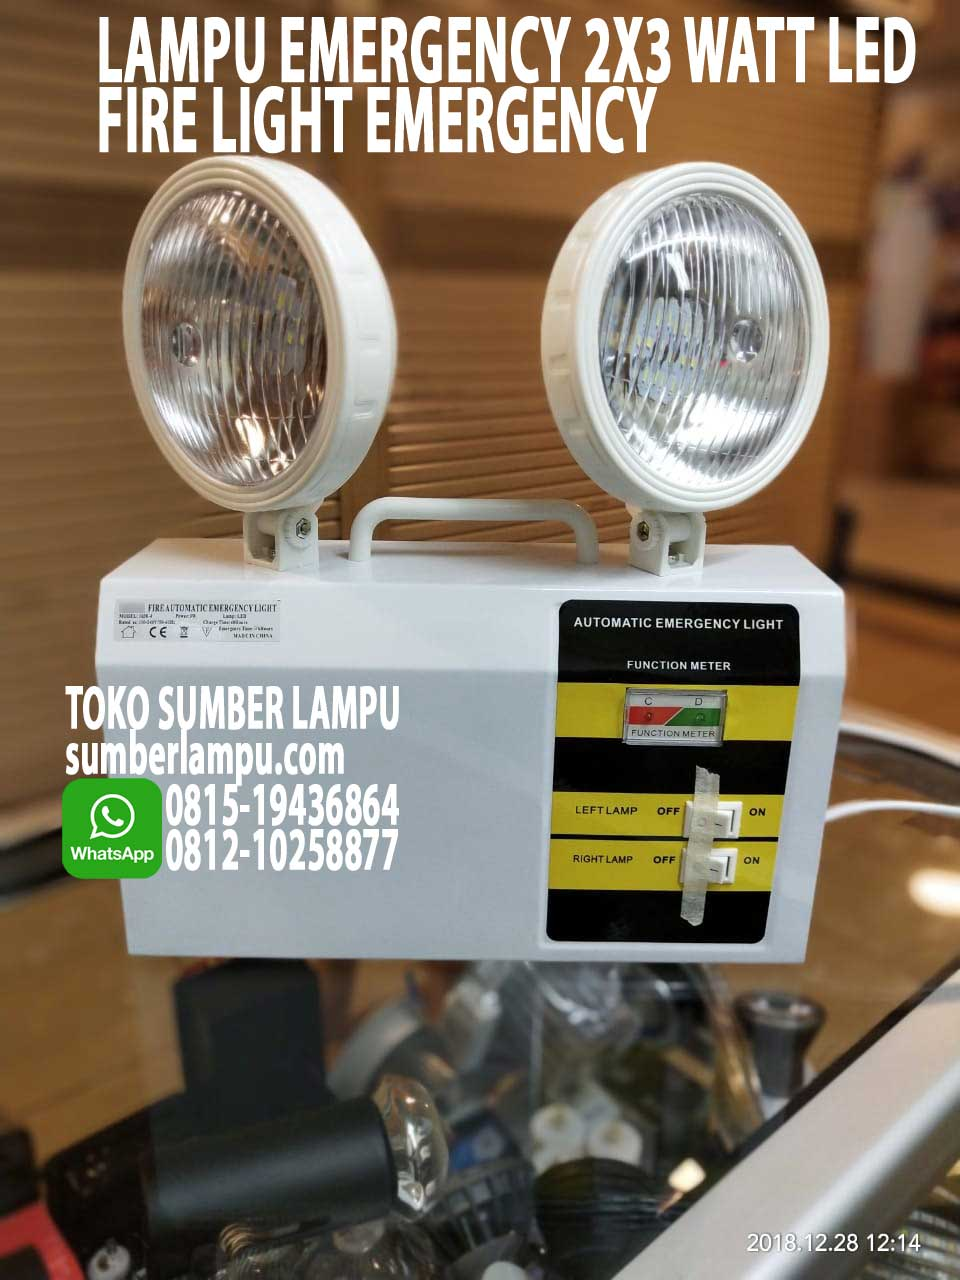 lampu emergency 2x3 watt